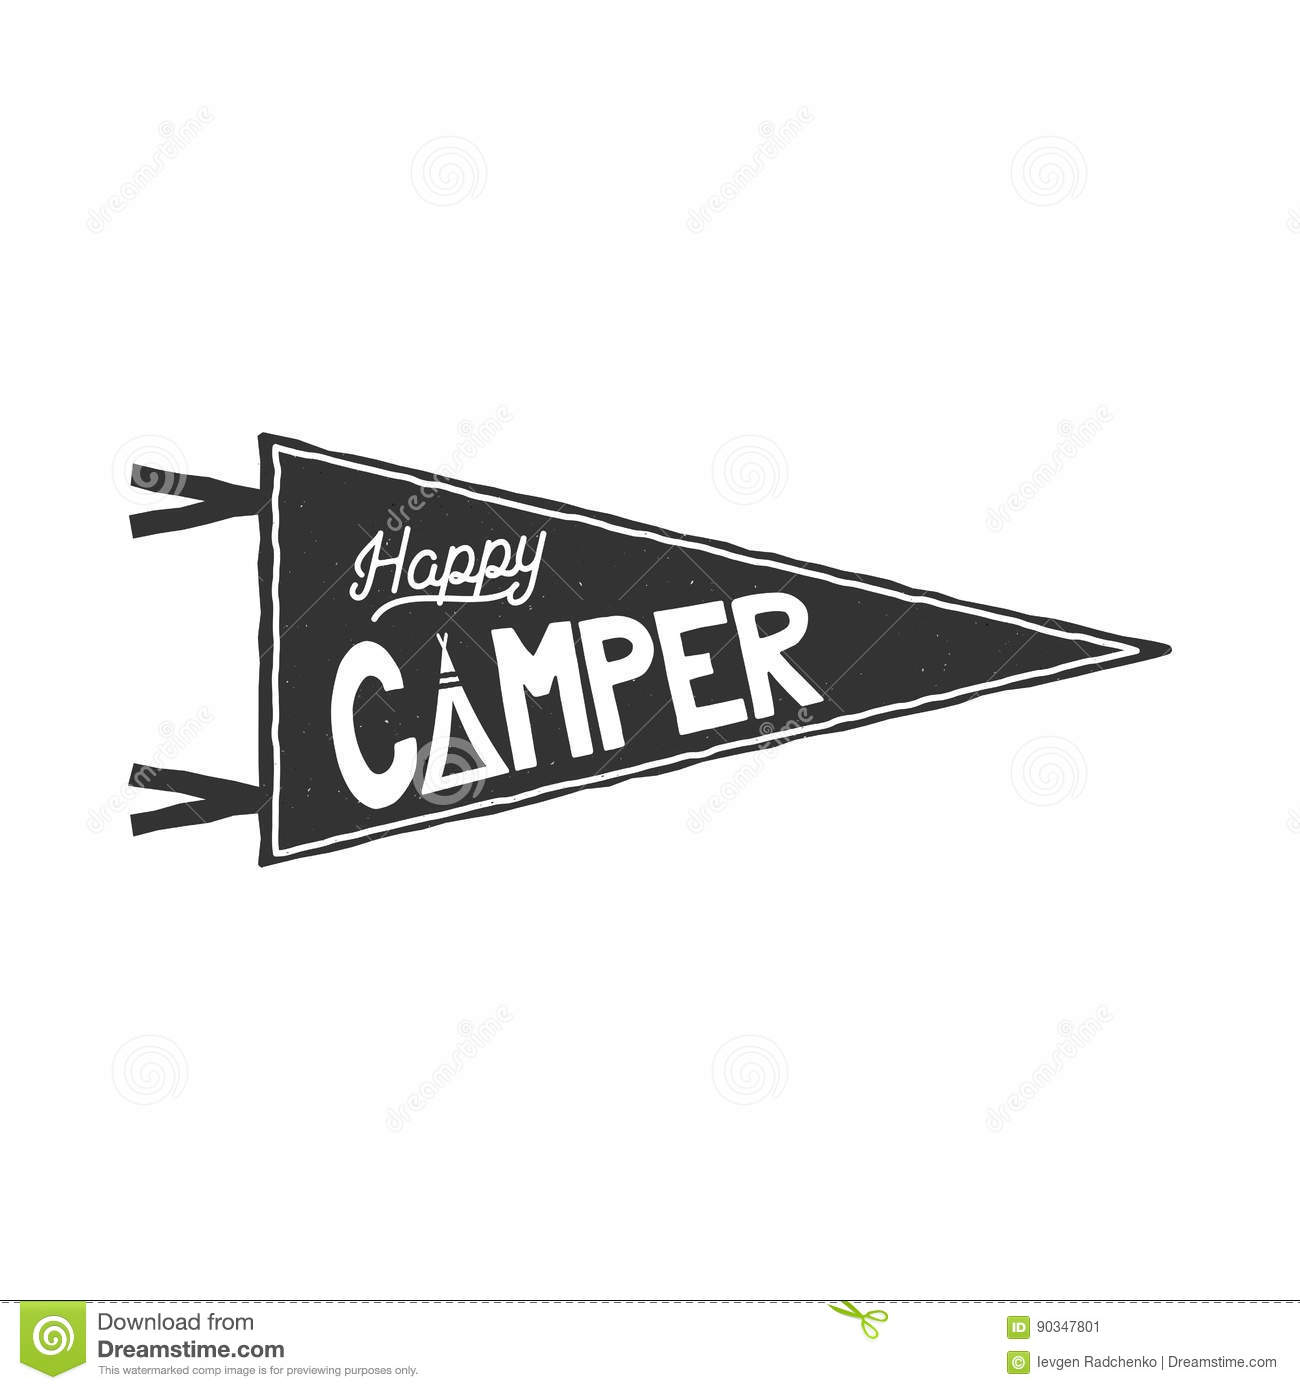 Happy camper pennant template. Typography design and outdoor activity symbol - tent. Monochrome. Vector isolated on